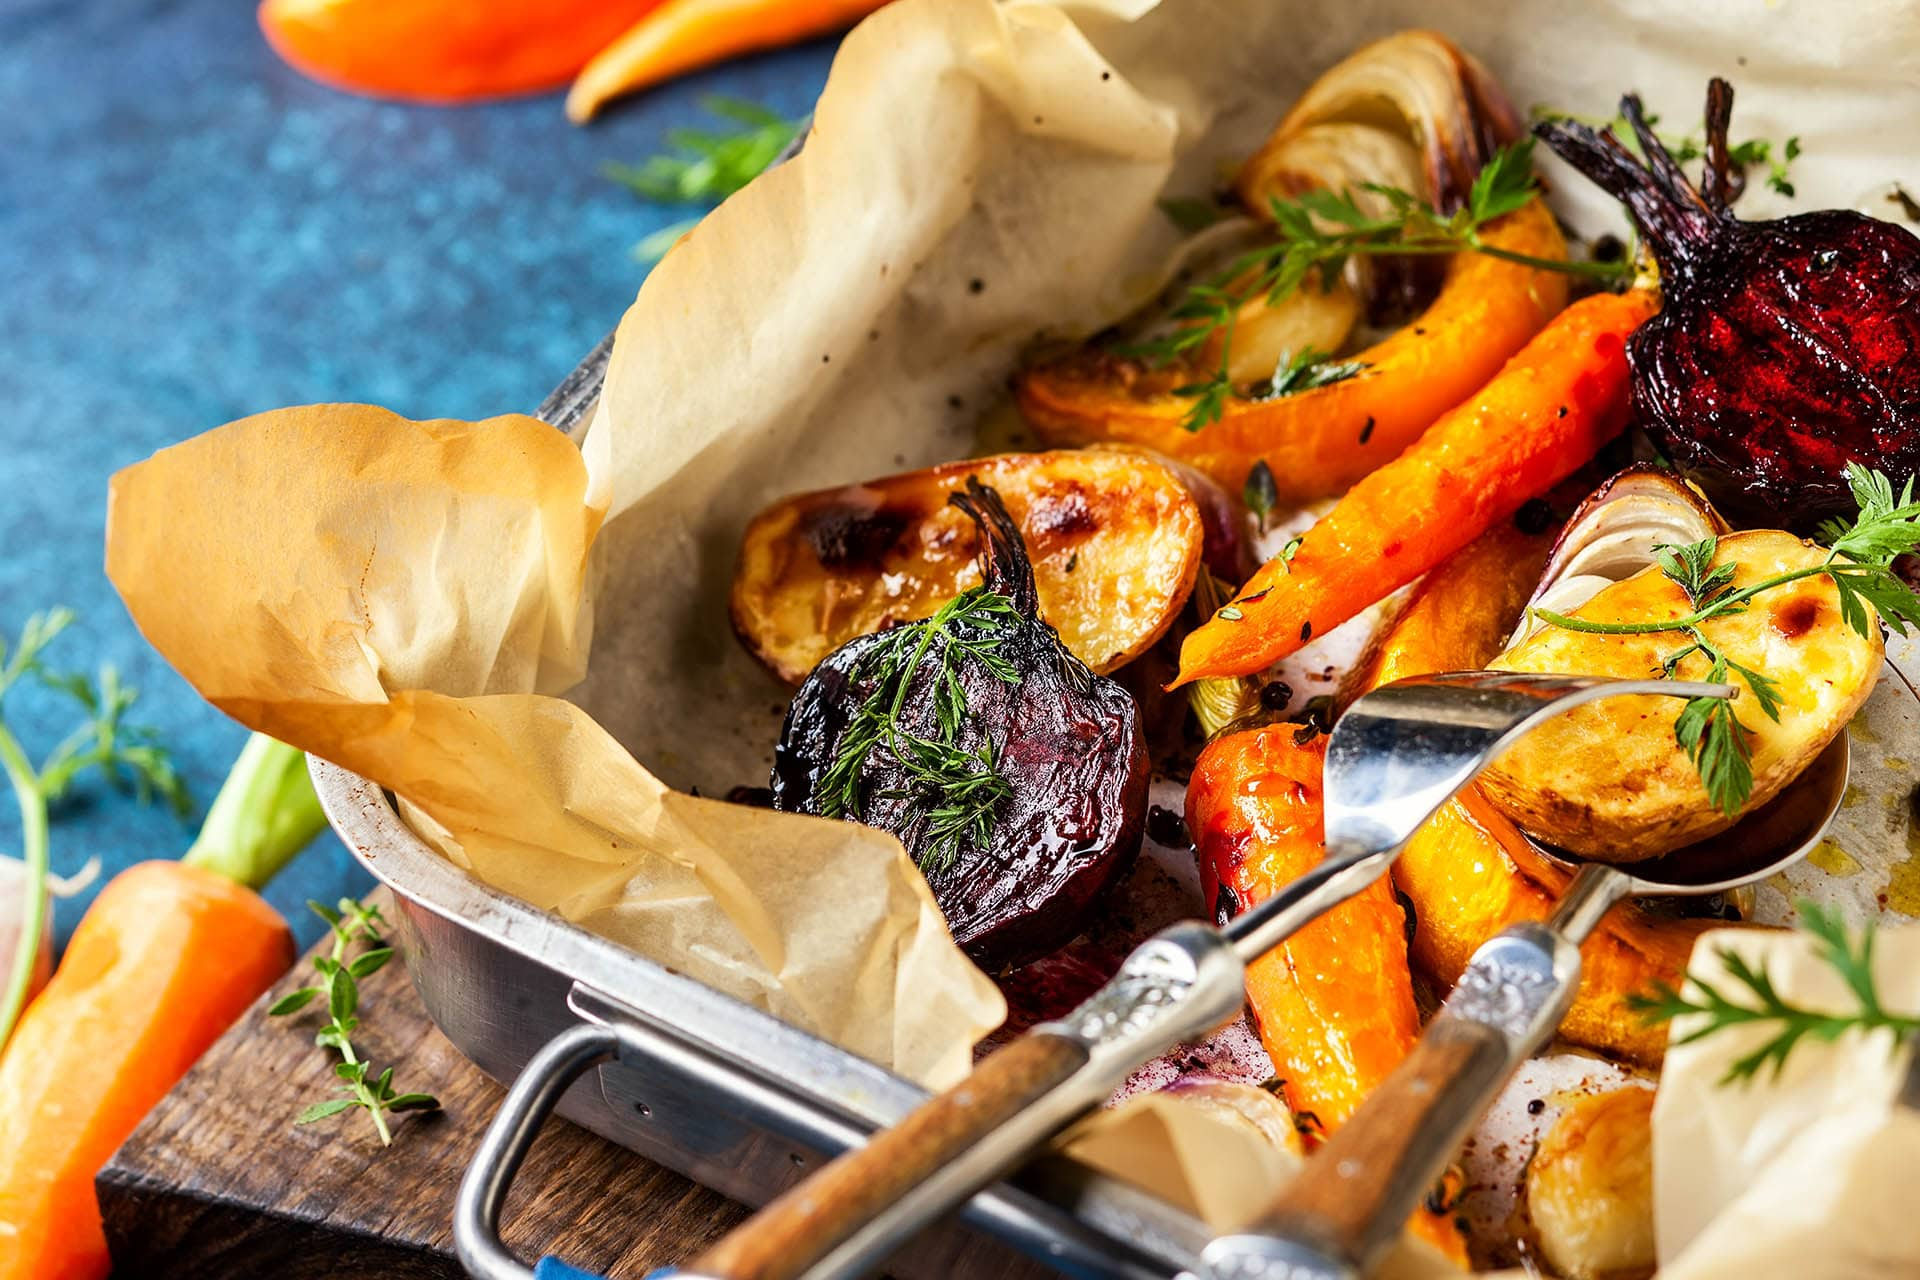 Sheet Pan Roasted Root Vegetables via @mermaidsandmojitos